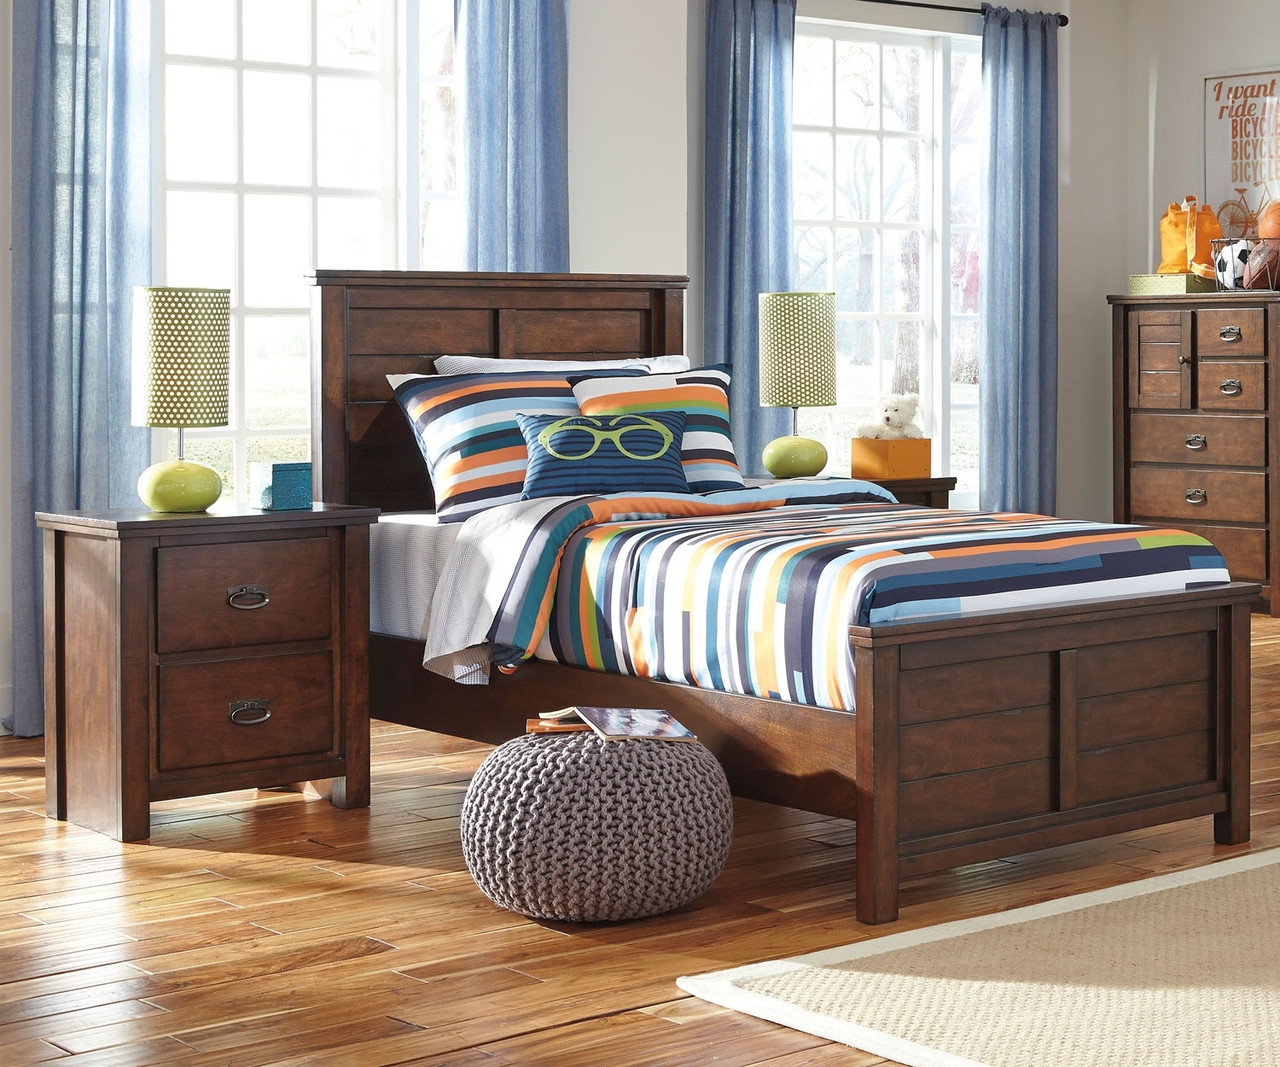 Ladiville B567 Panel Bed Twin Size